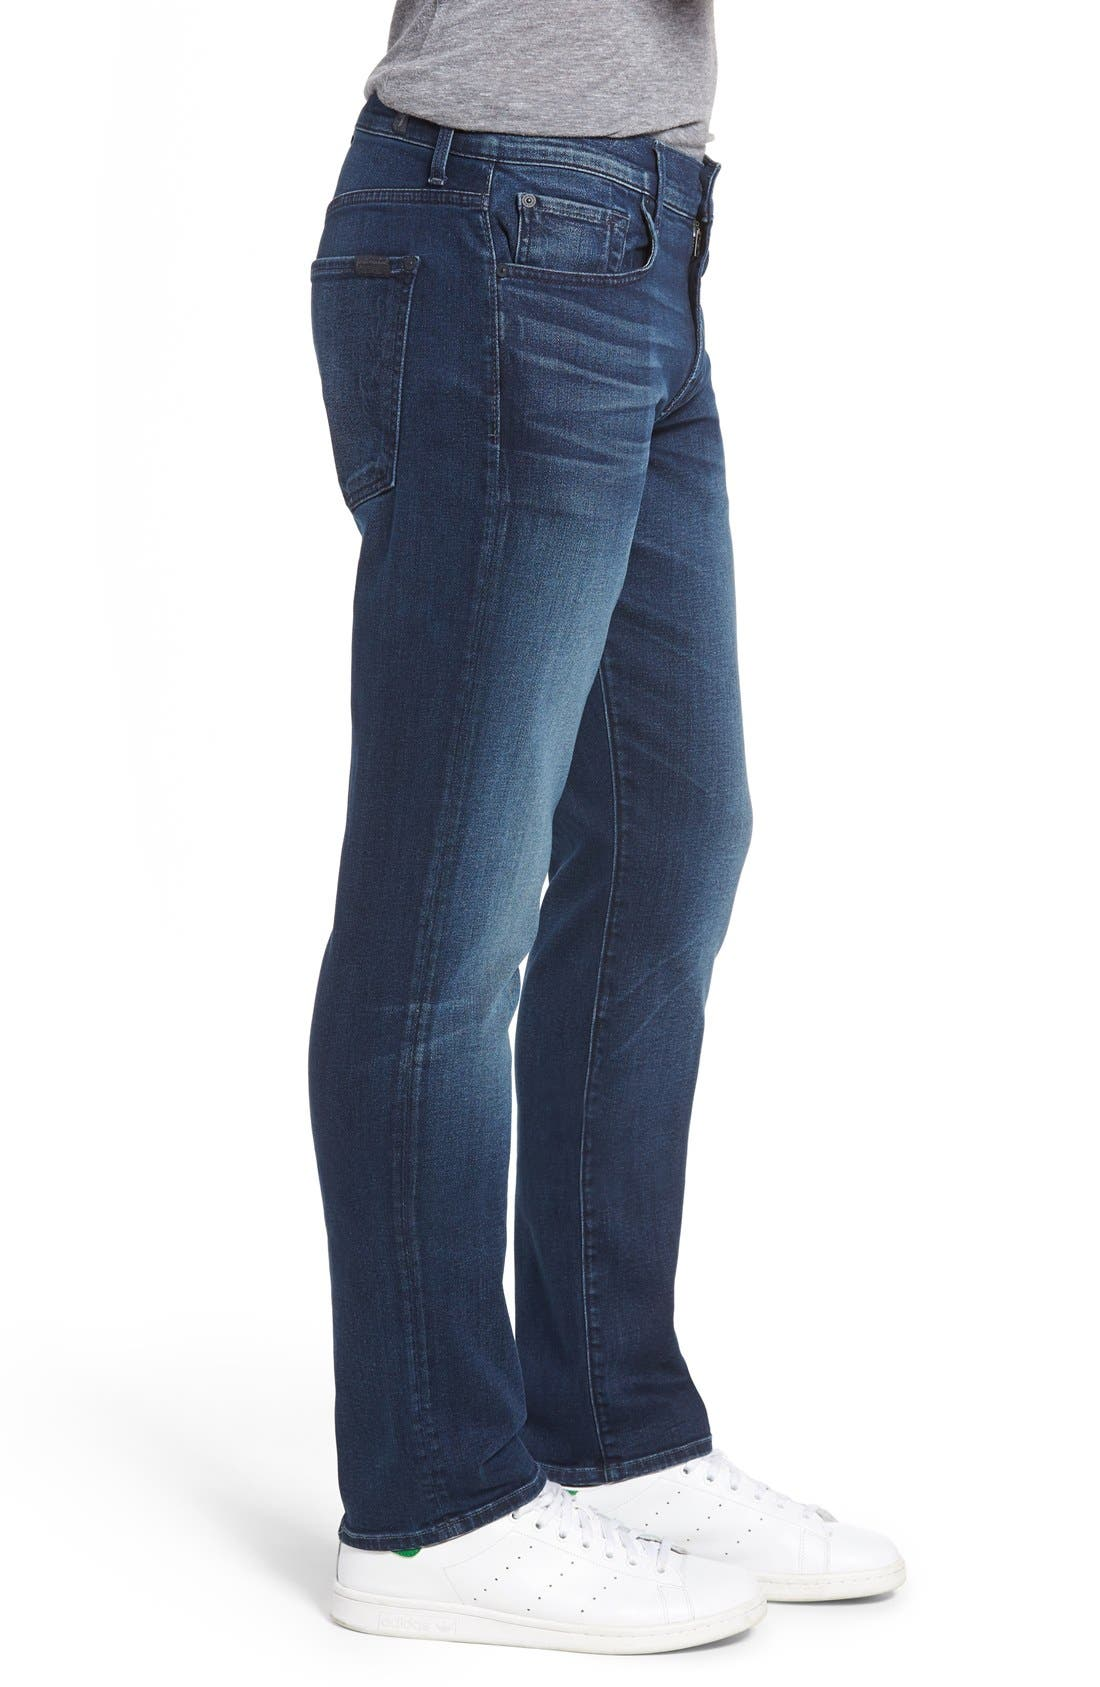 Slimmy Luxe Performance Slim Fit Jeans,                             Alternate thumbnail 4, color,                             402